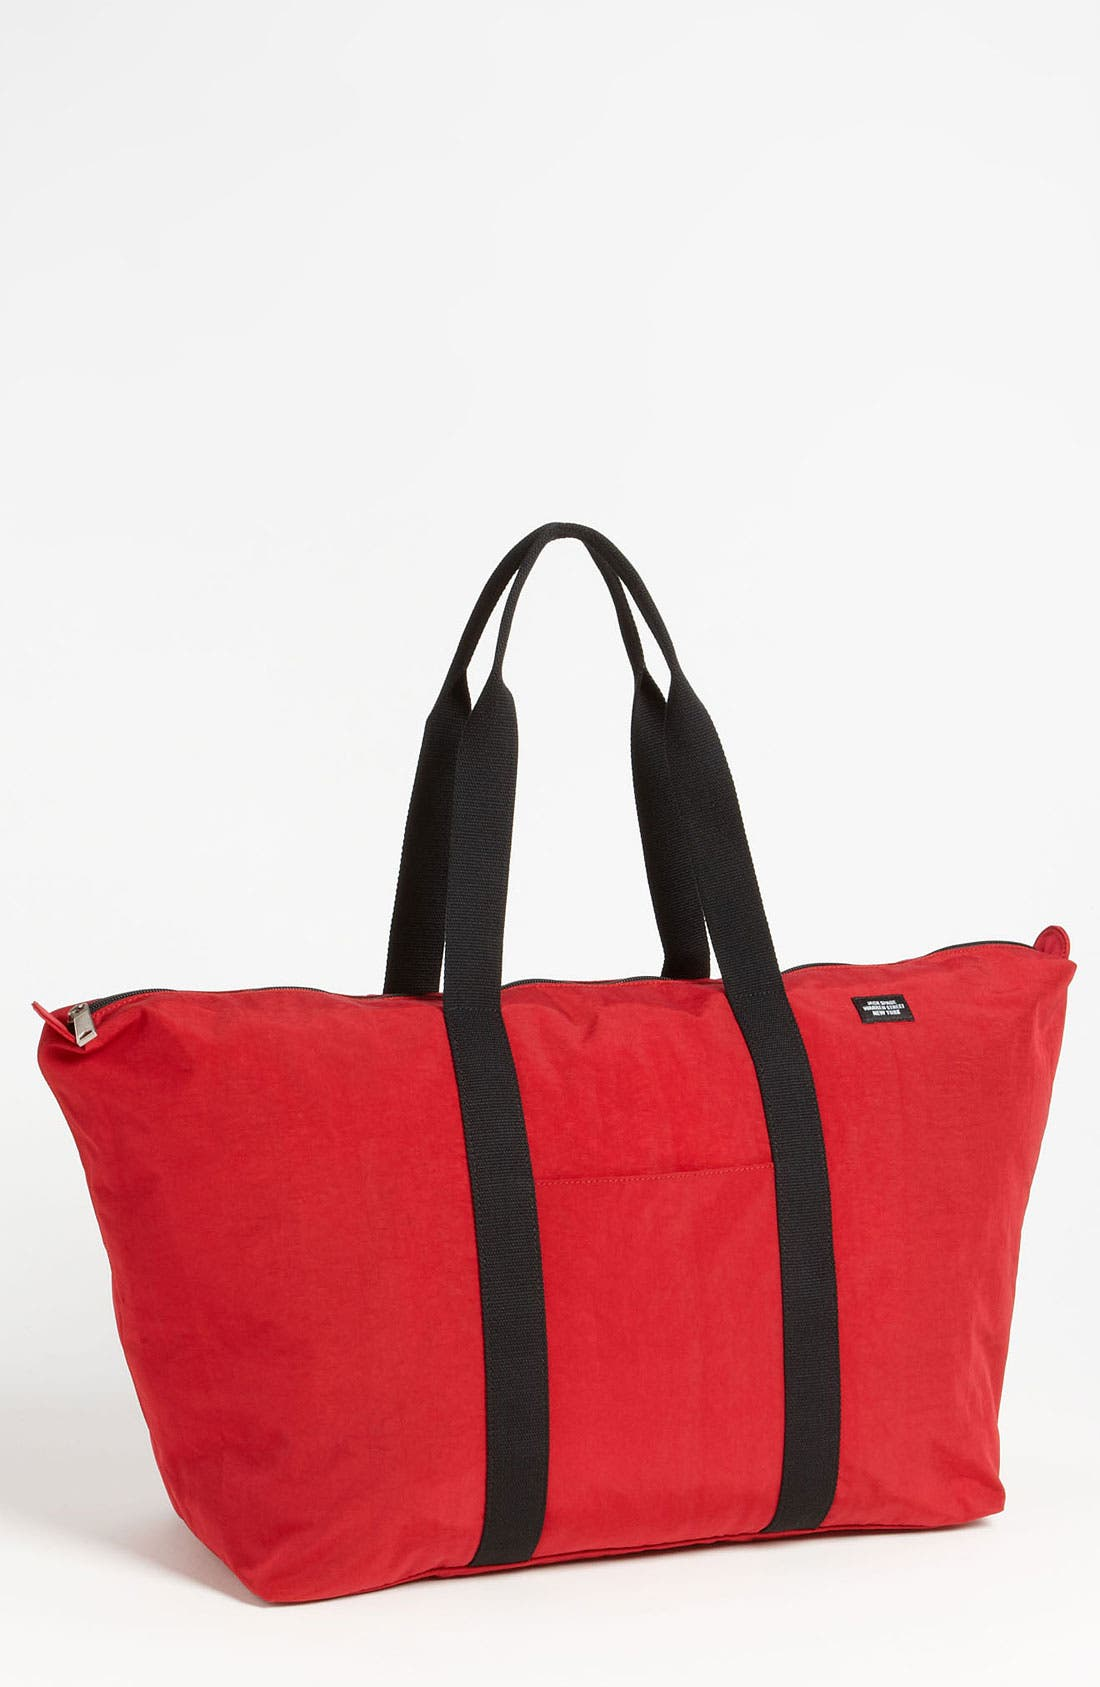 Alternate Image 1 Selected - Jack Spade Packable Duffel Bag